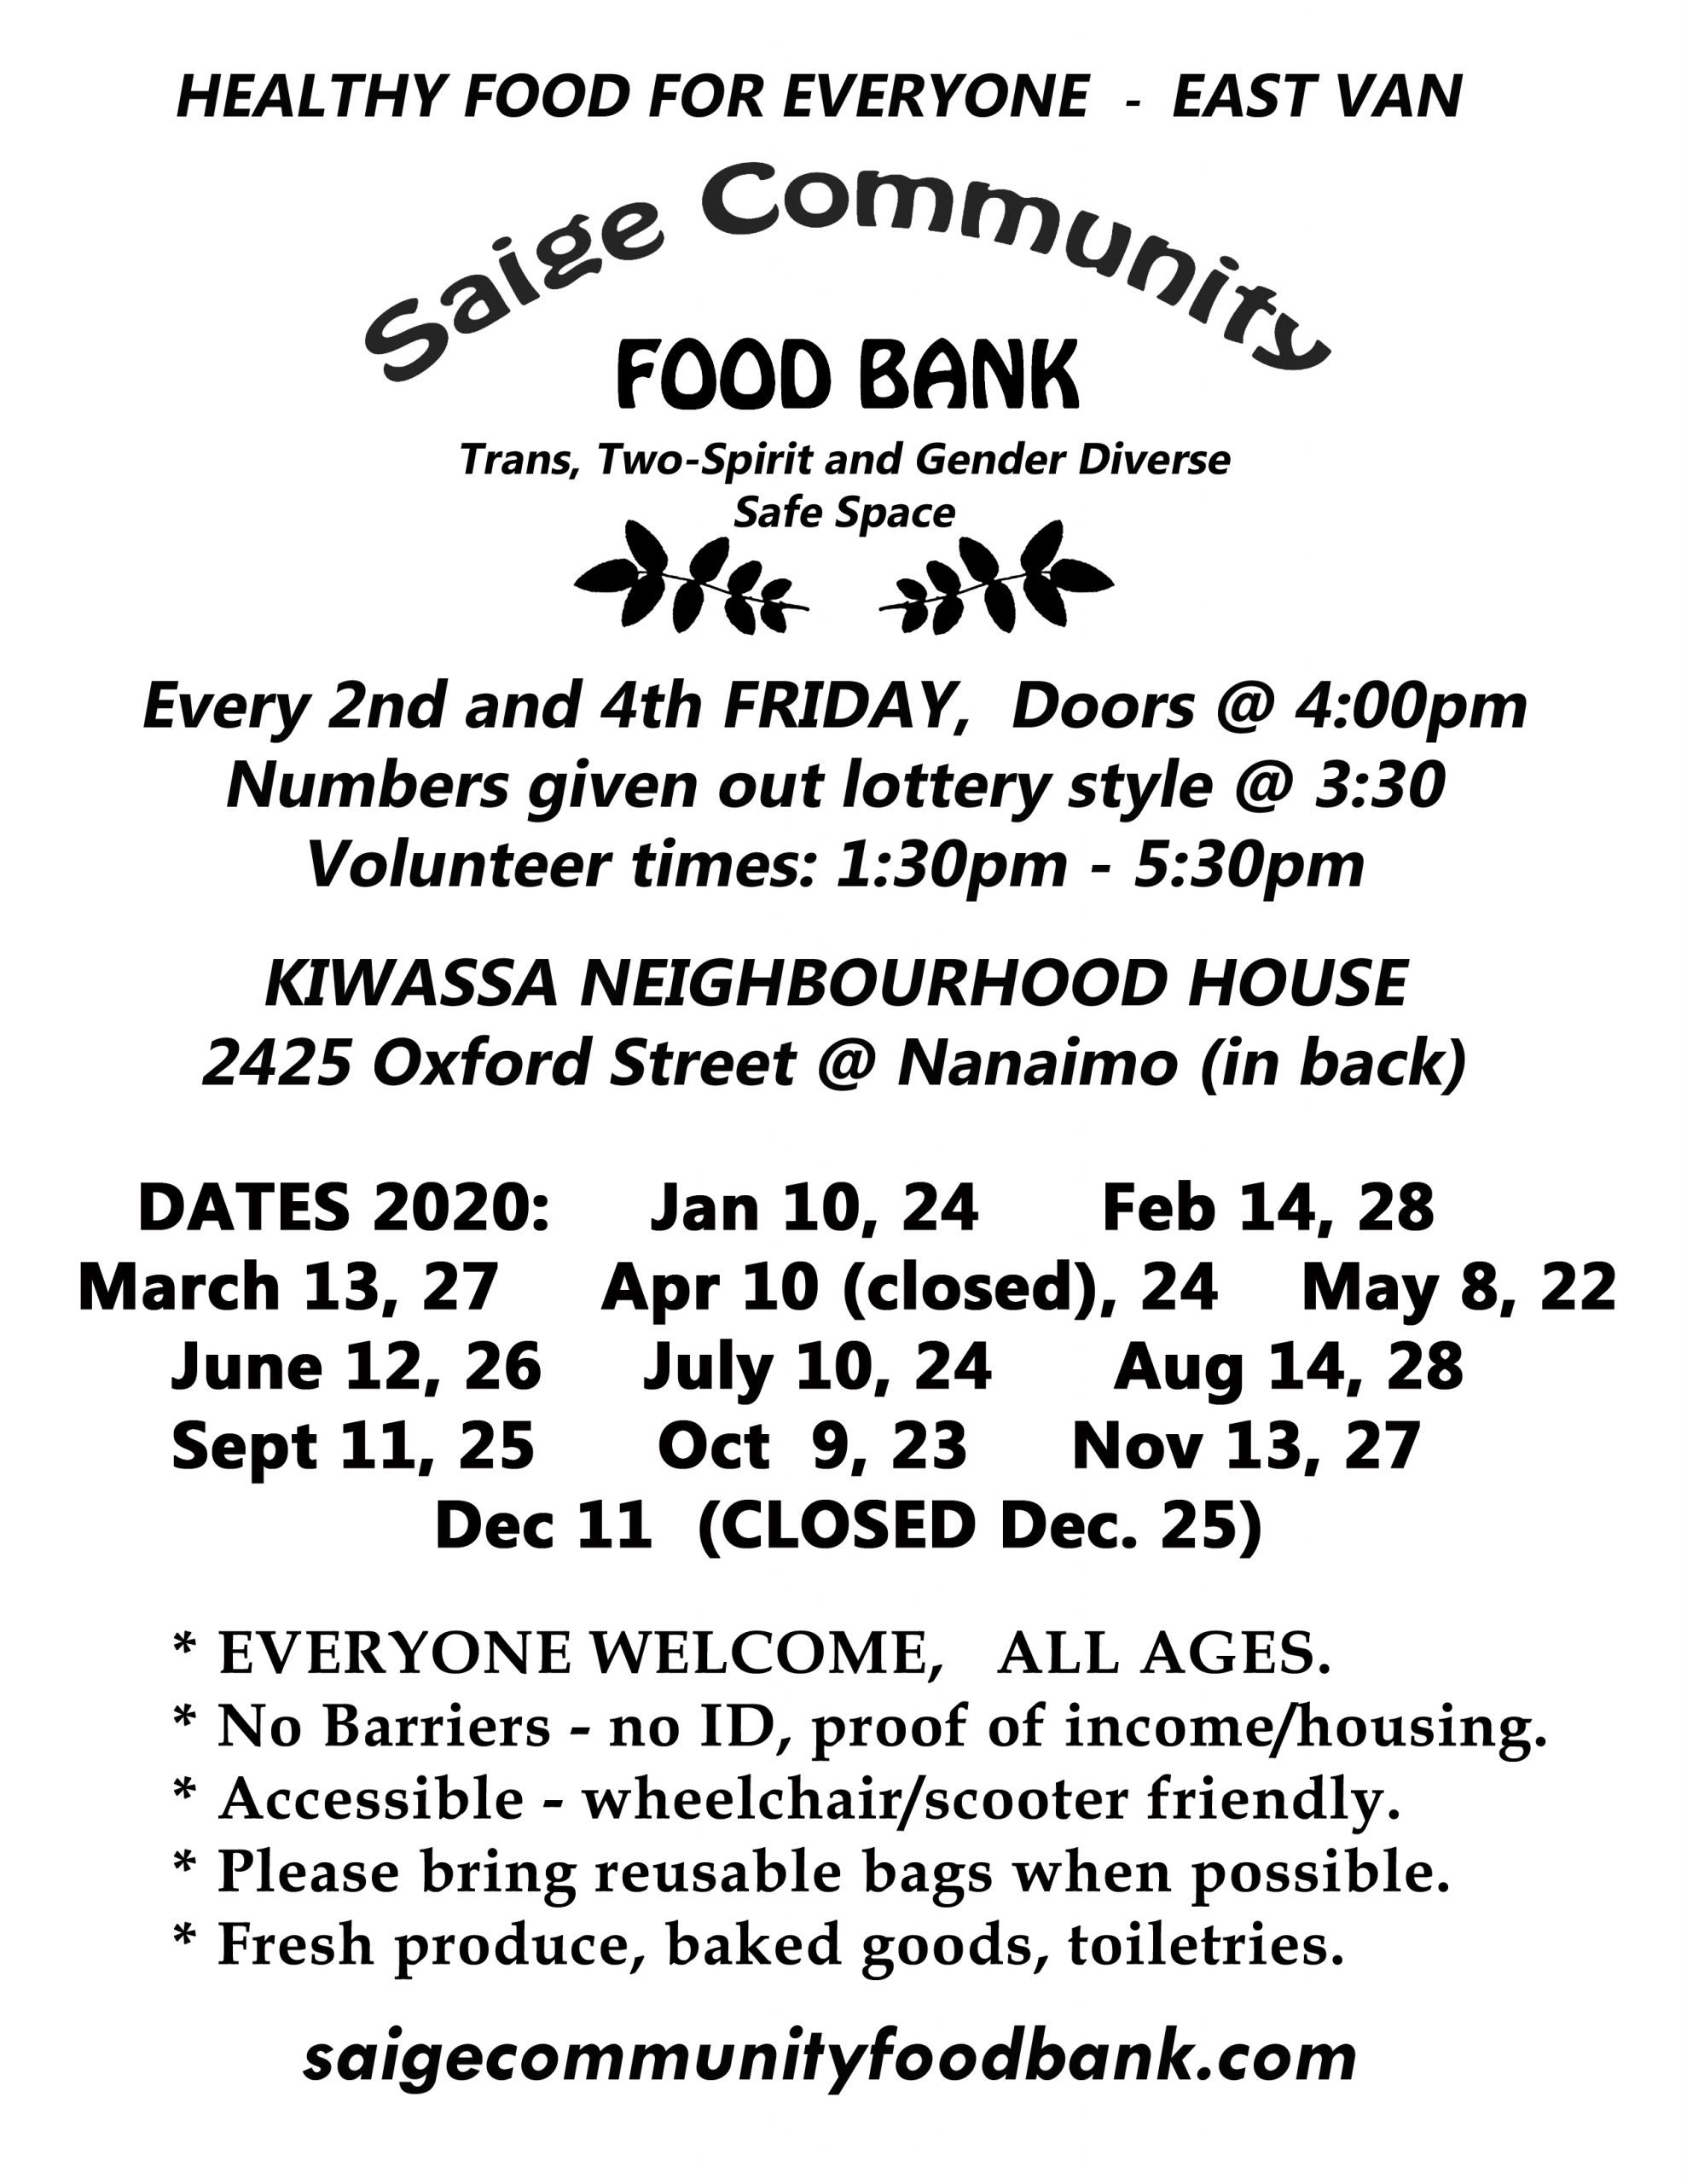 Food Bank Dates Poster 2020